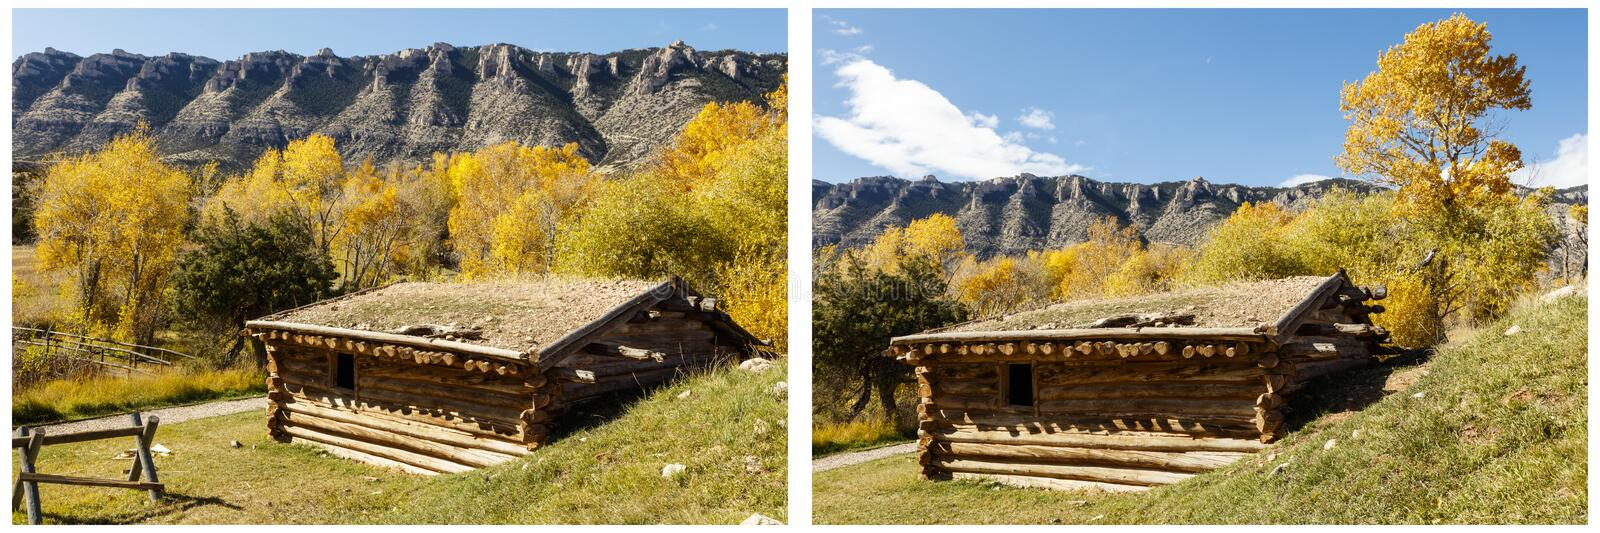 Ewing Snell Ranch historic Wyoming collage royalty free stock photography